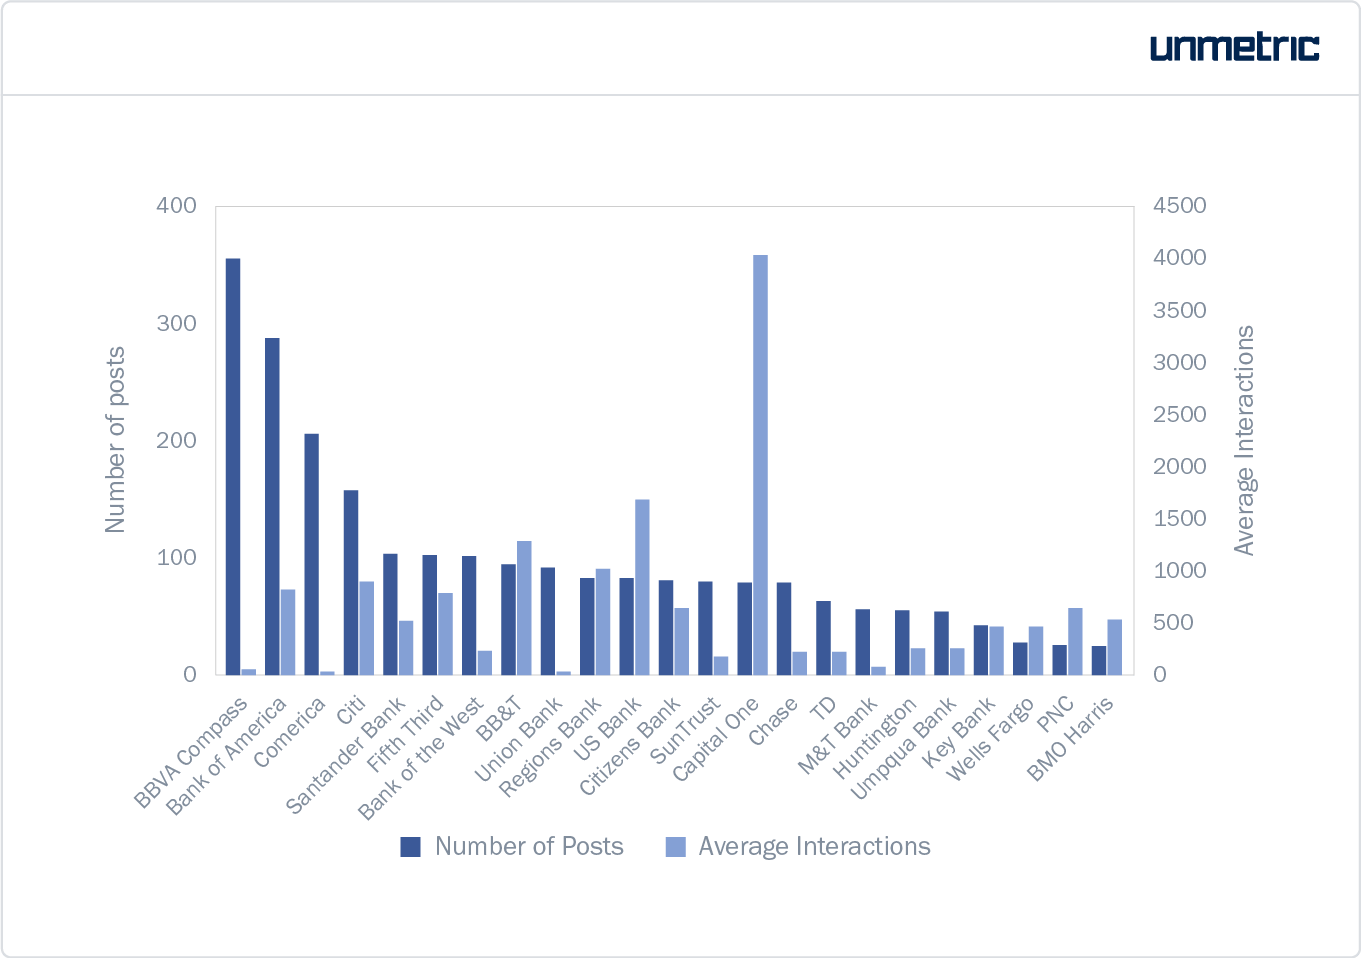 Number of posts put out by each brand vis-a-vis engagement